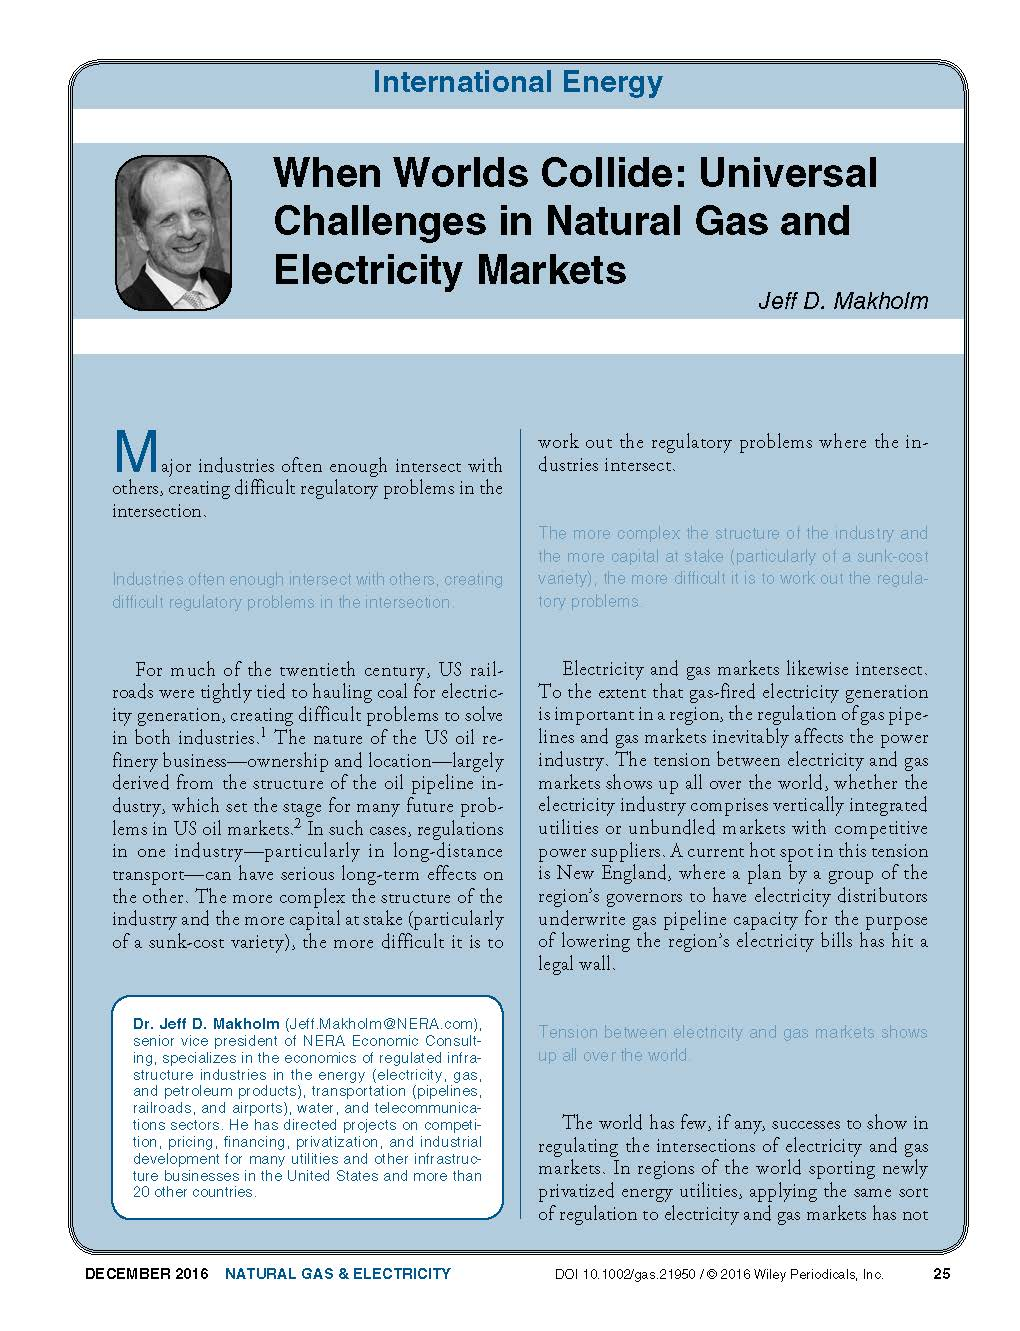 When Worlds Collide: Universal Challenges in Natural Gas and Electricity Markets